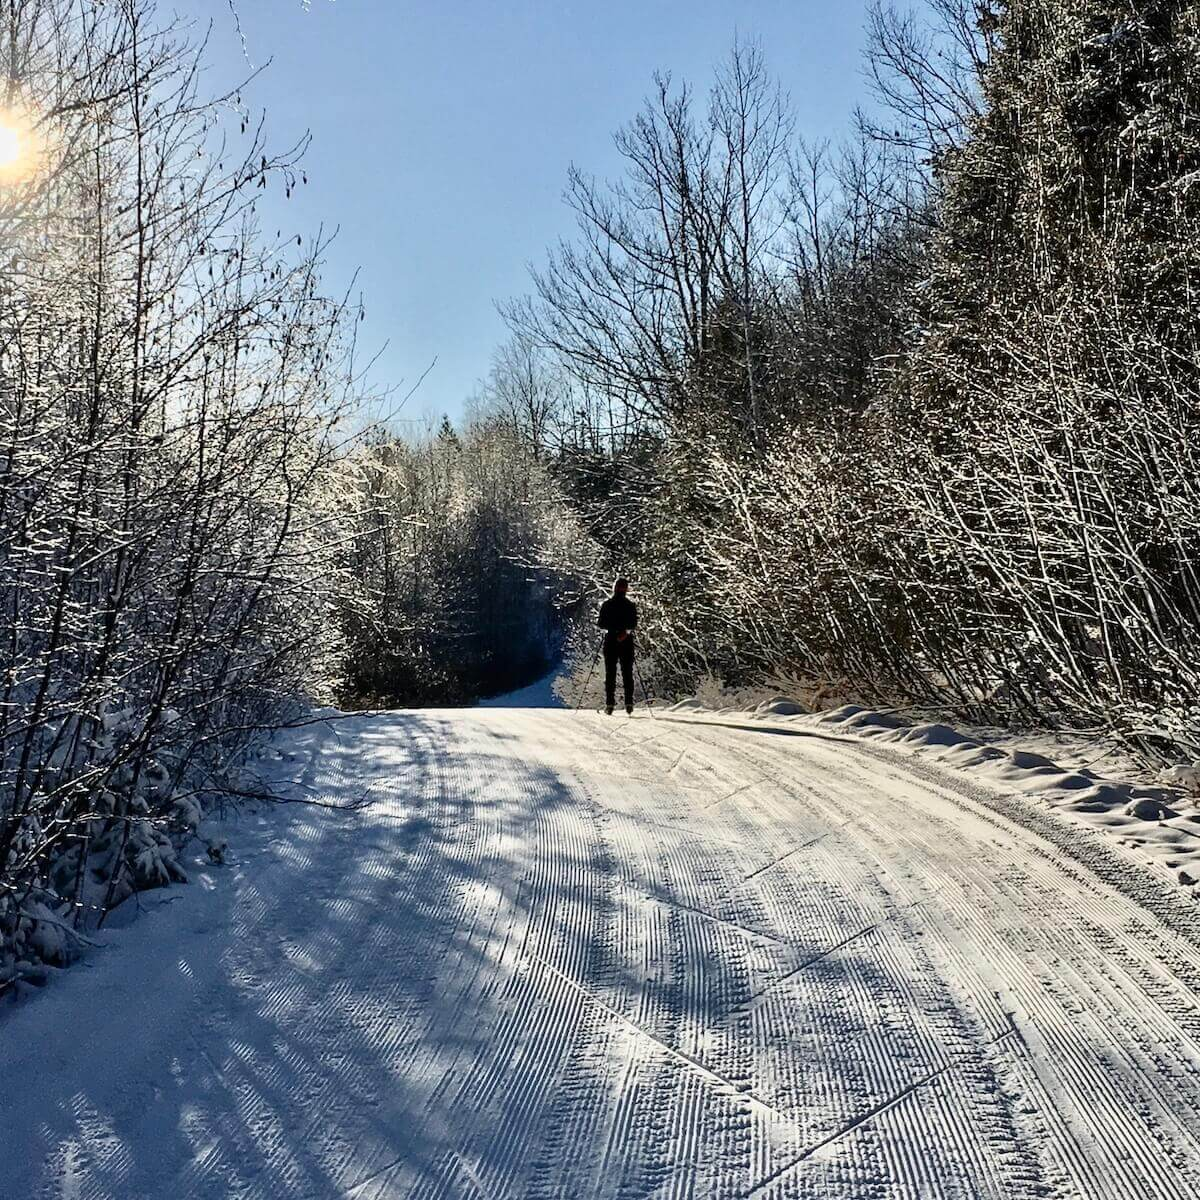 Pausing to reflect while cross country skiing on Excelsior Road on Christmas Day